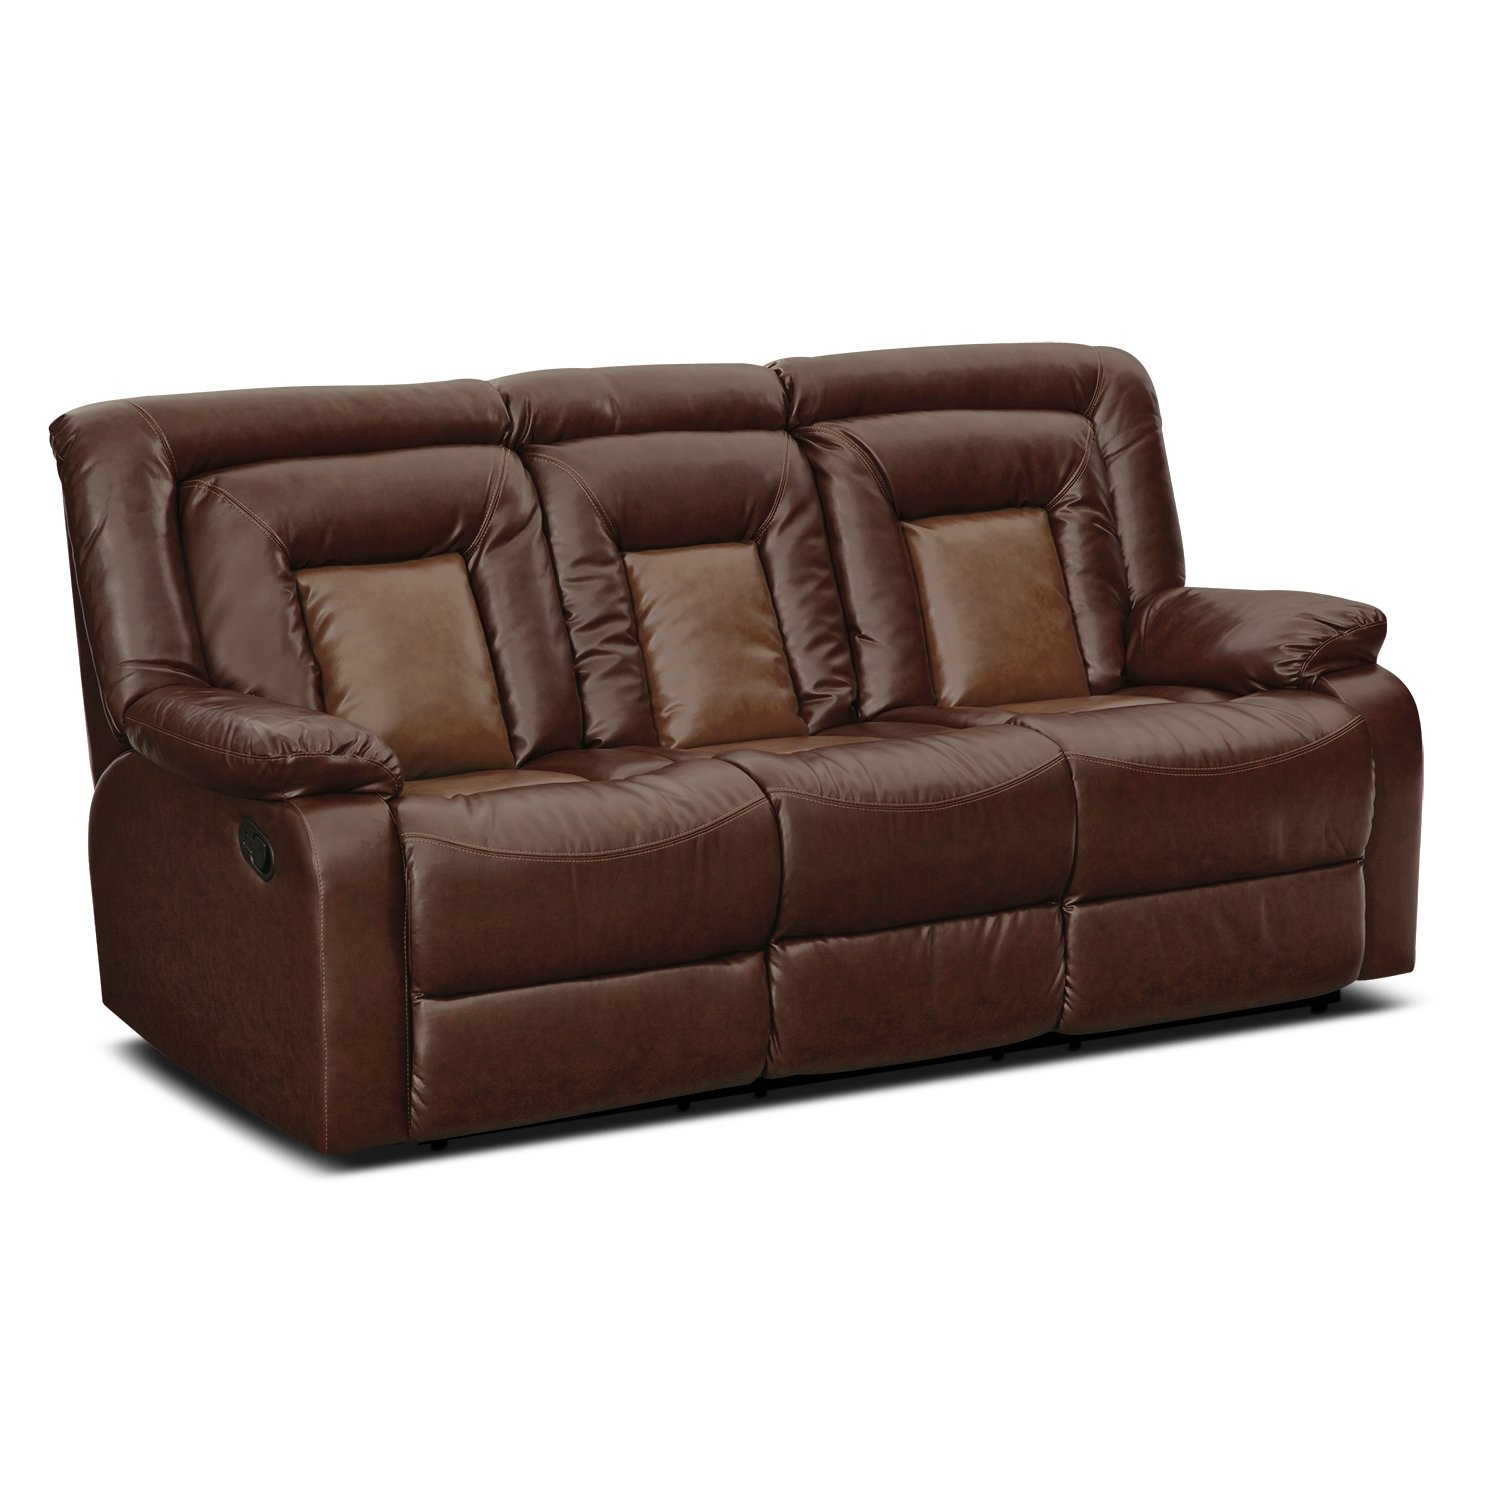 Roundhill Furniture Kmax Dual Reclining Sofa  sc 1 st  Ebanos Crossing & Best Reclining Sofas | Best Reclining Sofas islam-shia.org